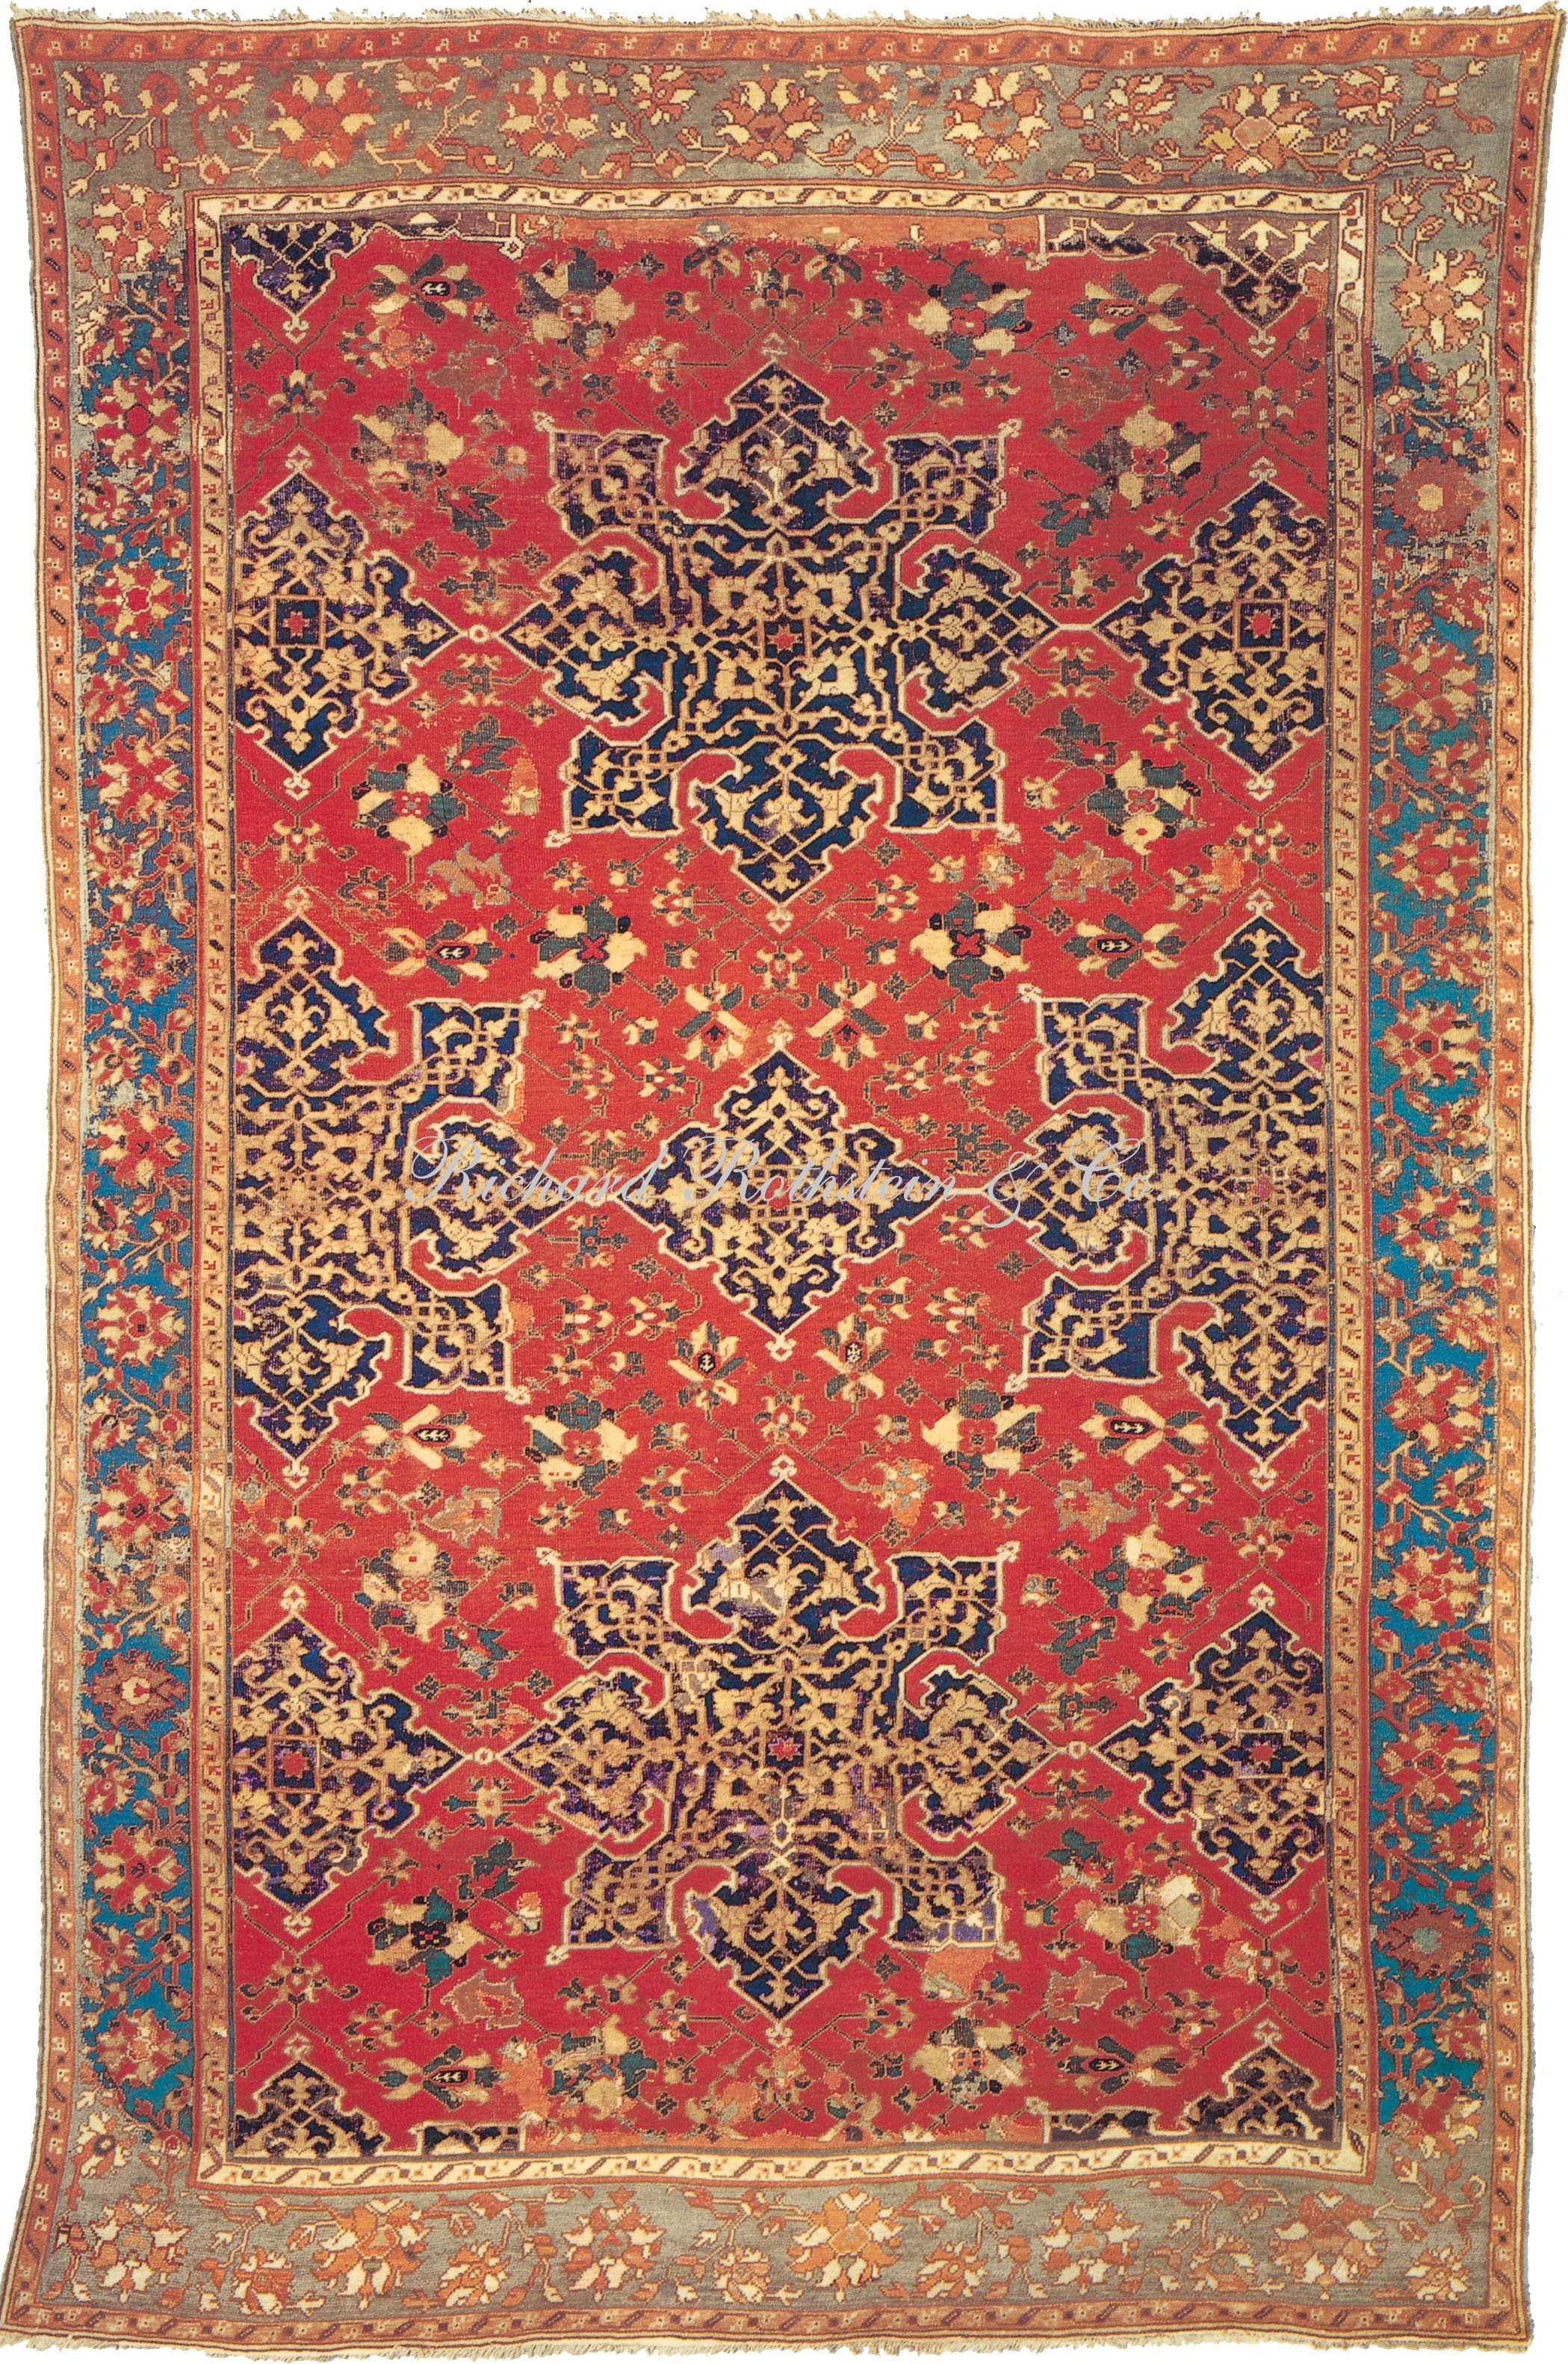 Awesome oushak rugs for floorings and rugs ideas with antique oushak rugs